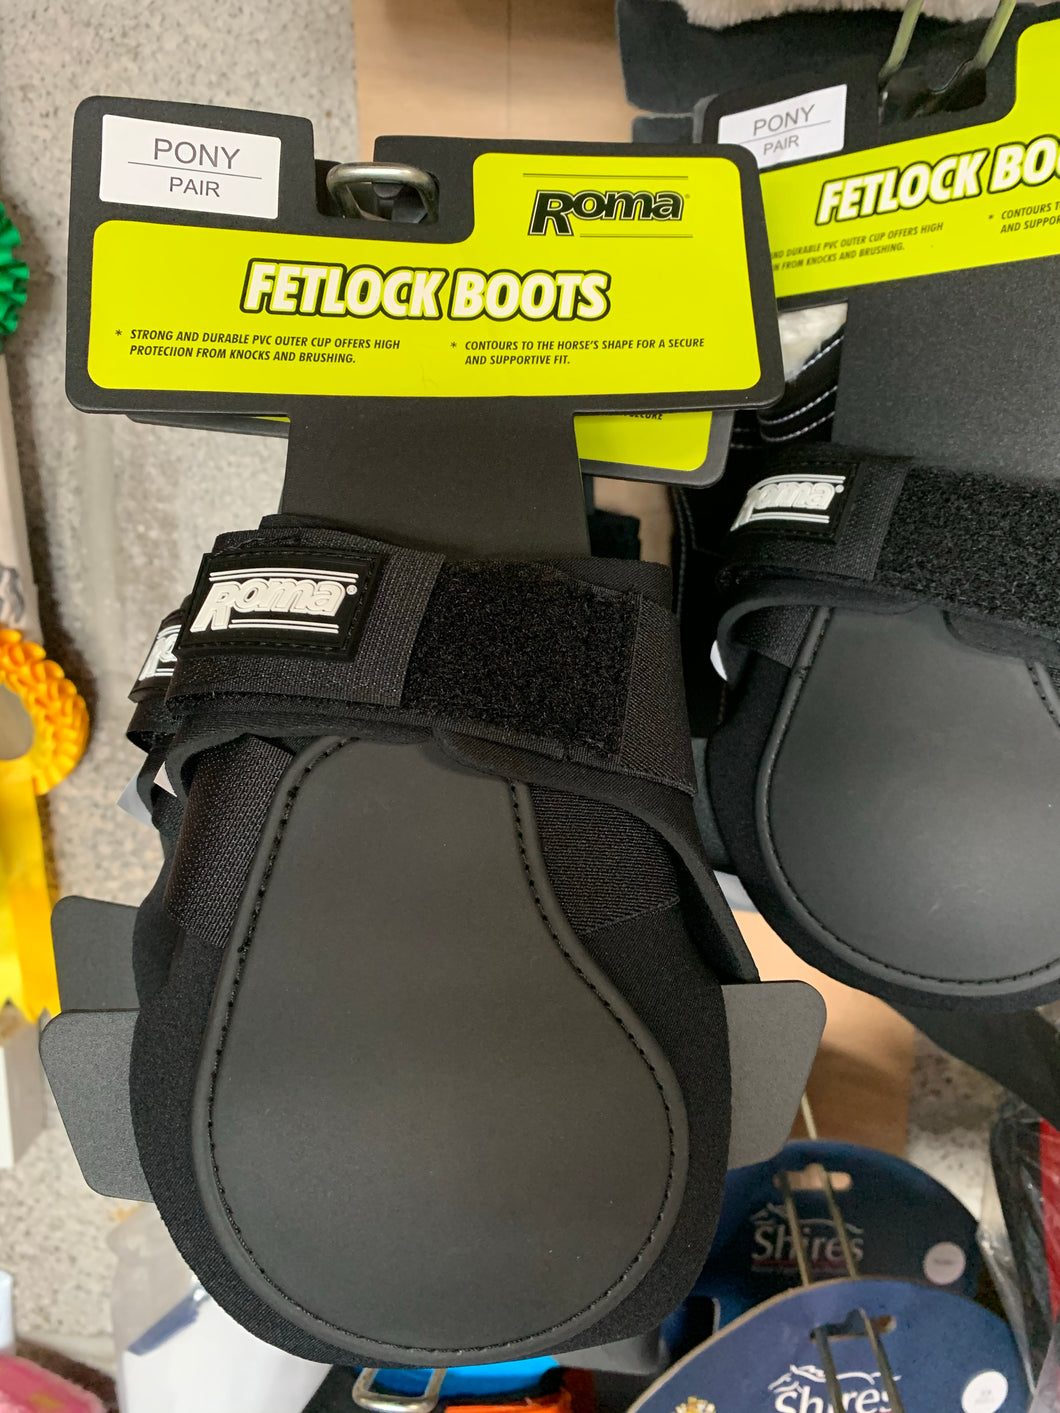 Roma Black Pony Fetlock Boots - Brand New - Fast Delivery 🚚